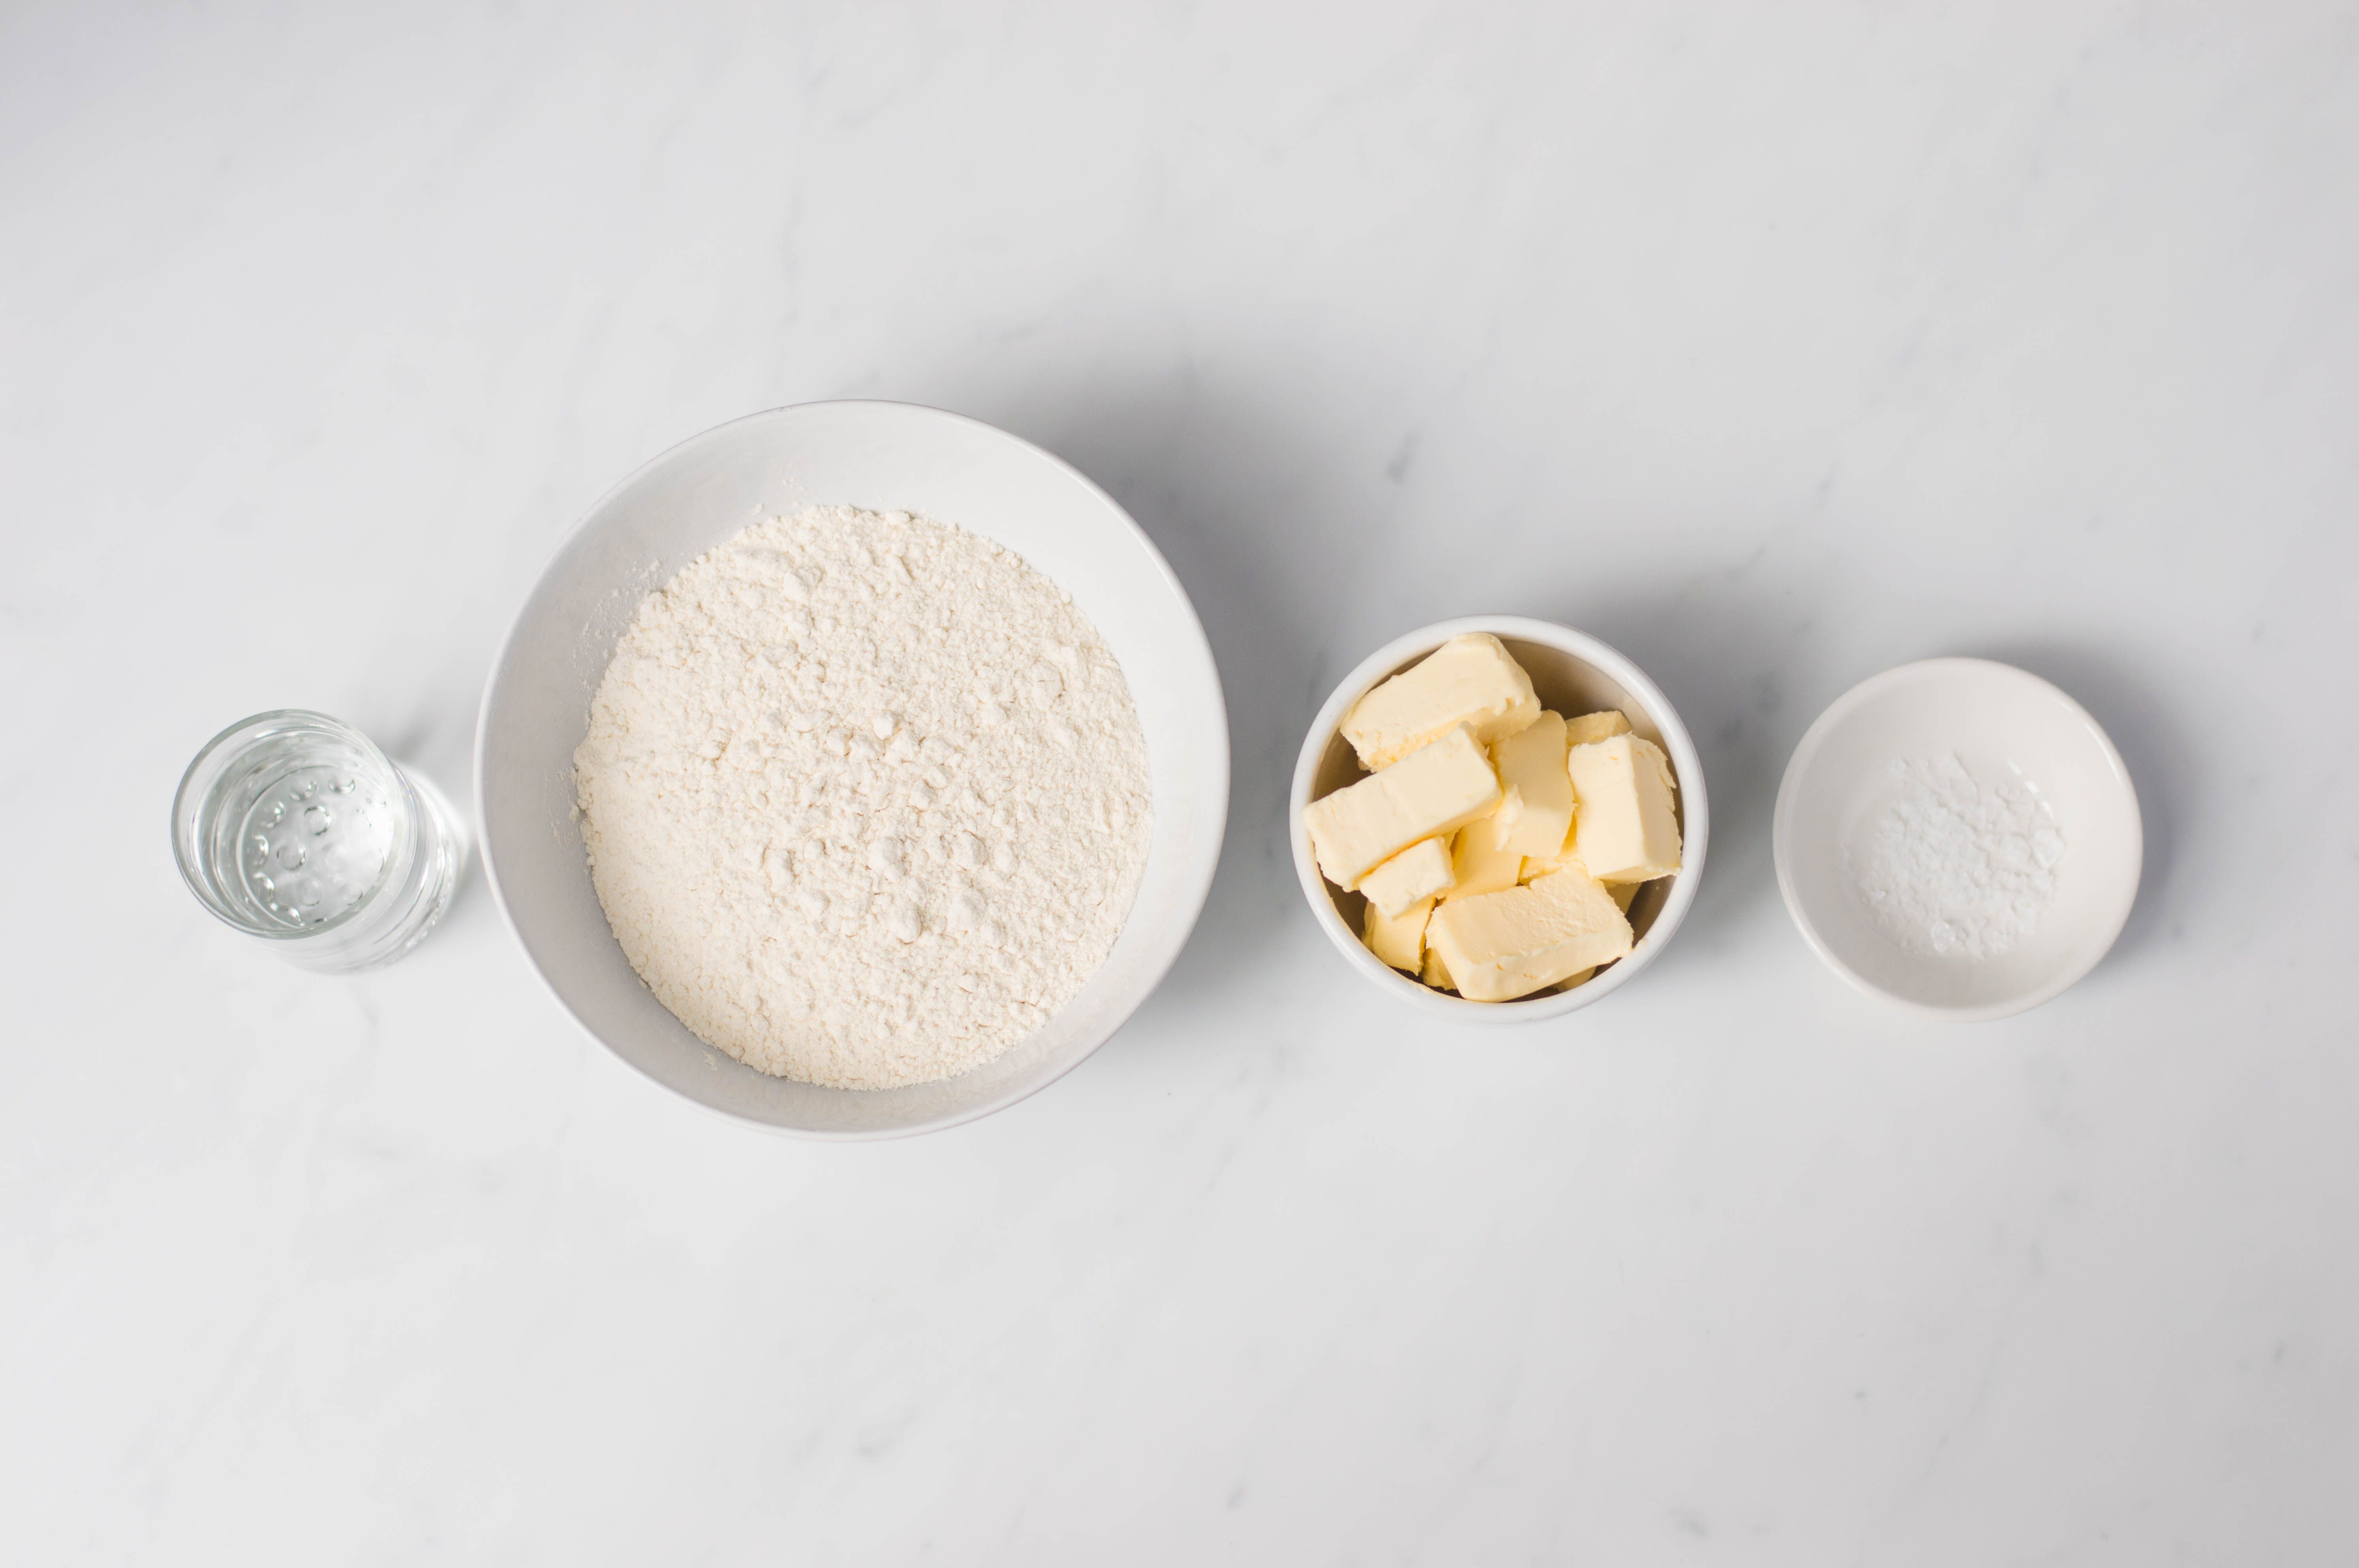 Ingredient to make a crust for cheese and onion flan